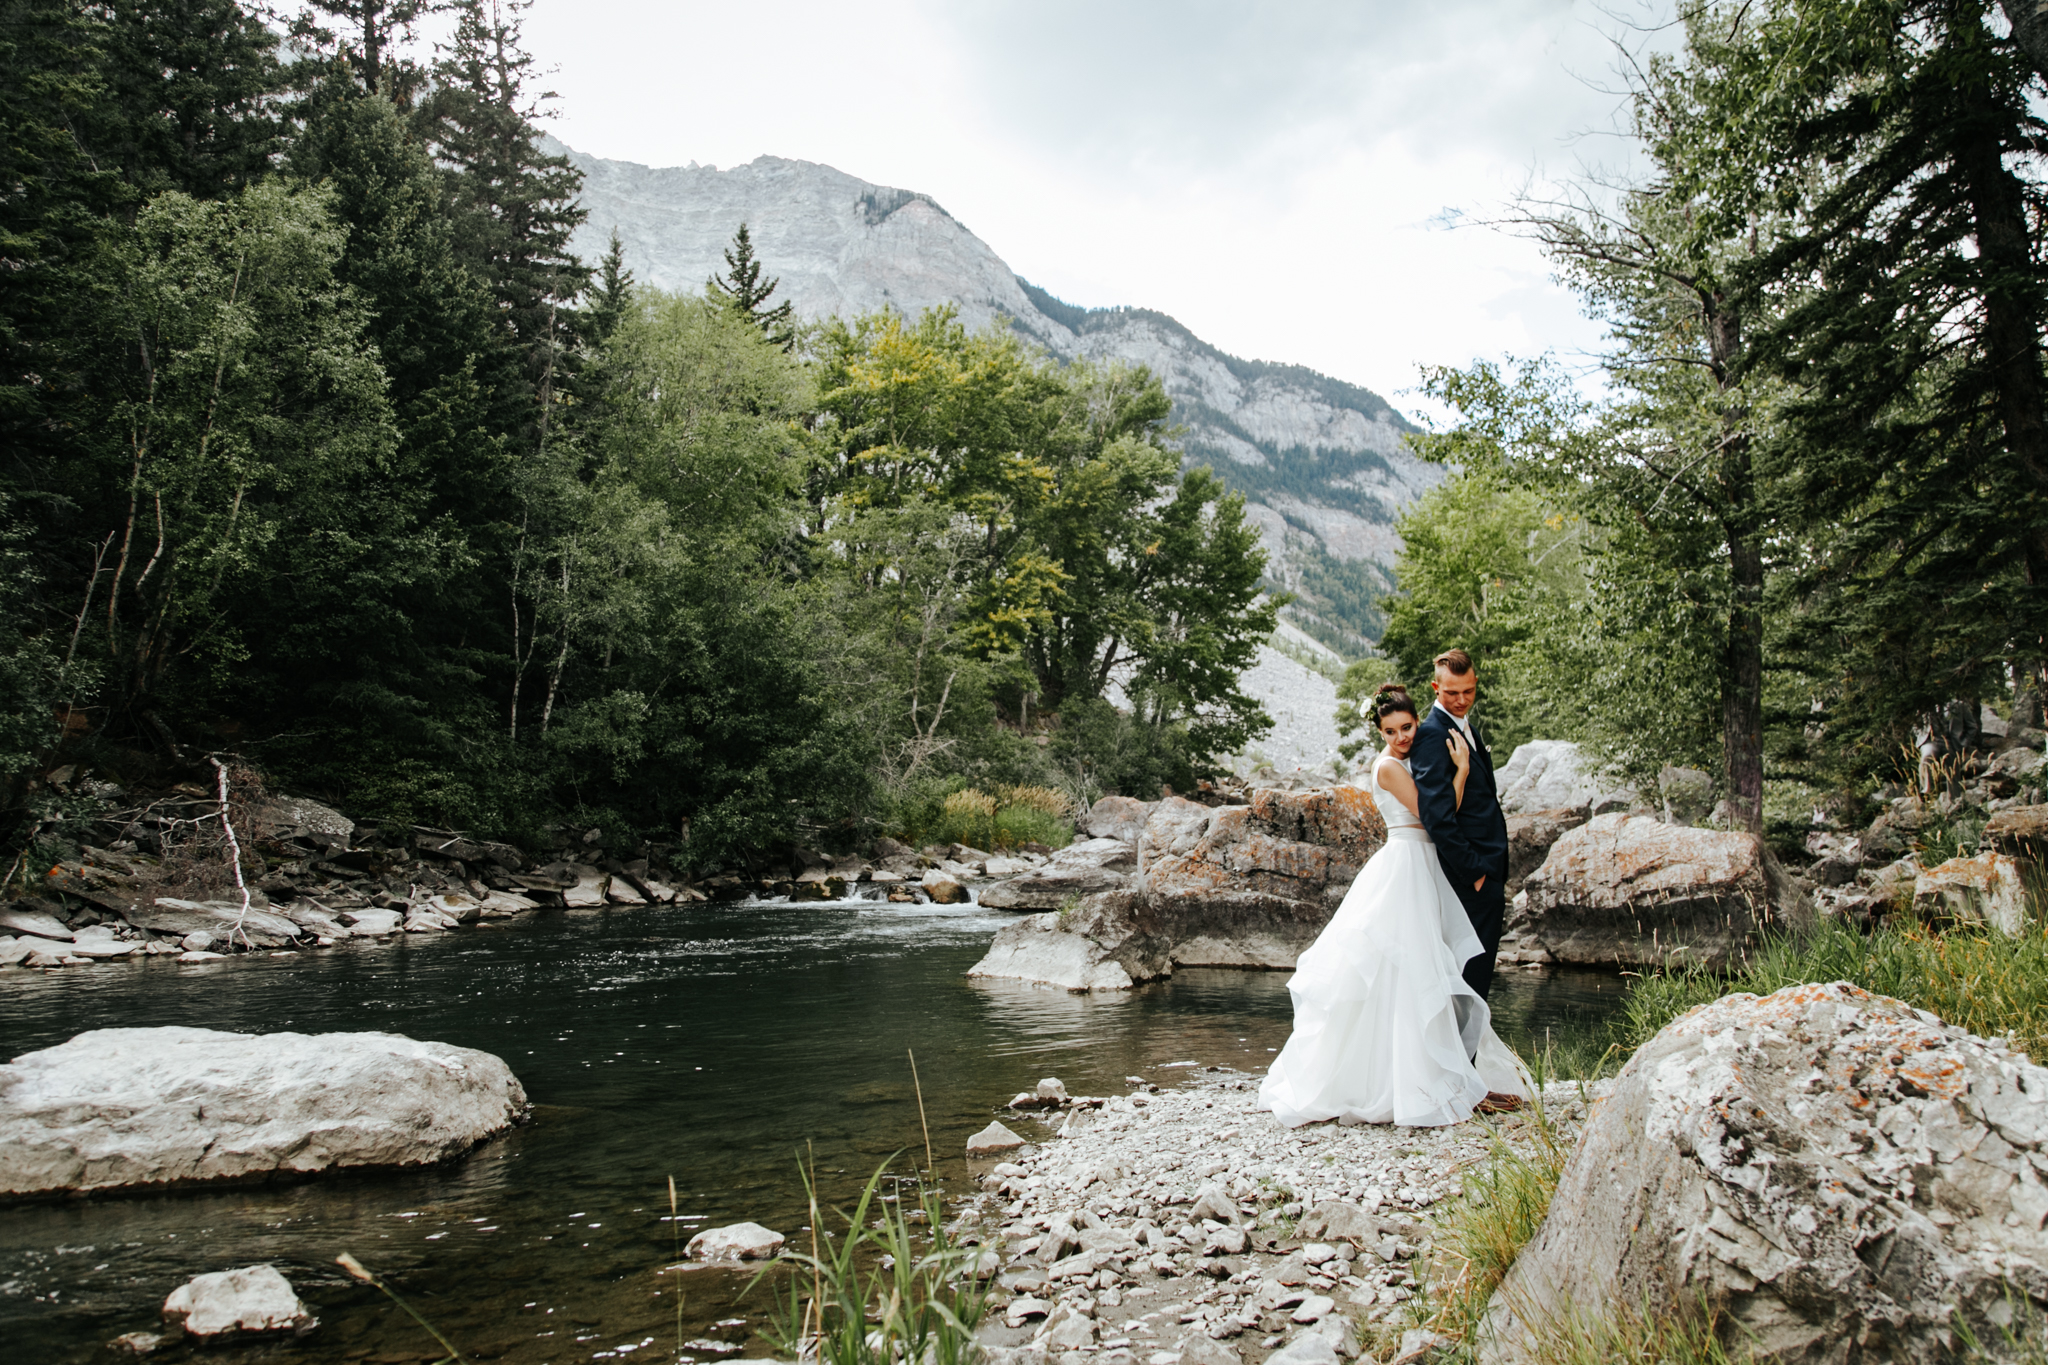 lethbridge-wedding-photographer-love-and-be-loved-photography-kurtis-beth-springbreak-flower-farm-crowsnest-pass-mountain-picture-image-photo-14.jpg